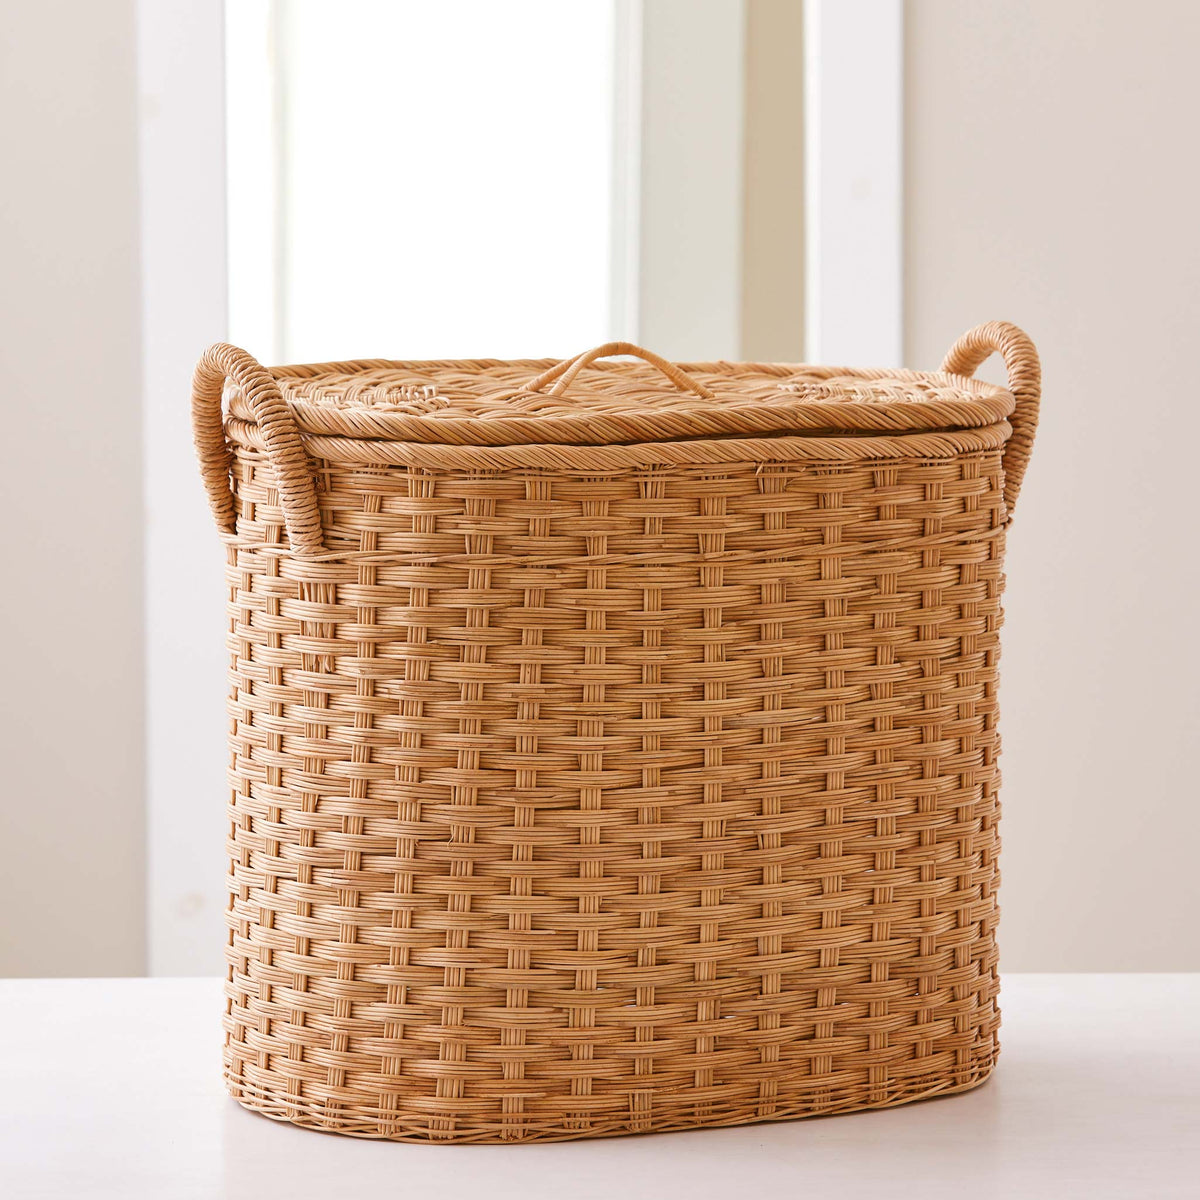 Oval rattan storage basket. Unique storage baskets with lids and handles. 5 sizes. Large basket shown. Great basket for storage. XL, L, M, S, XS.